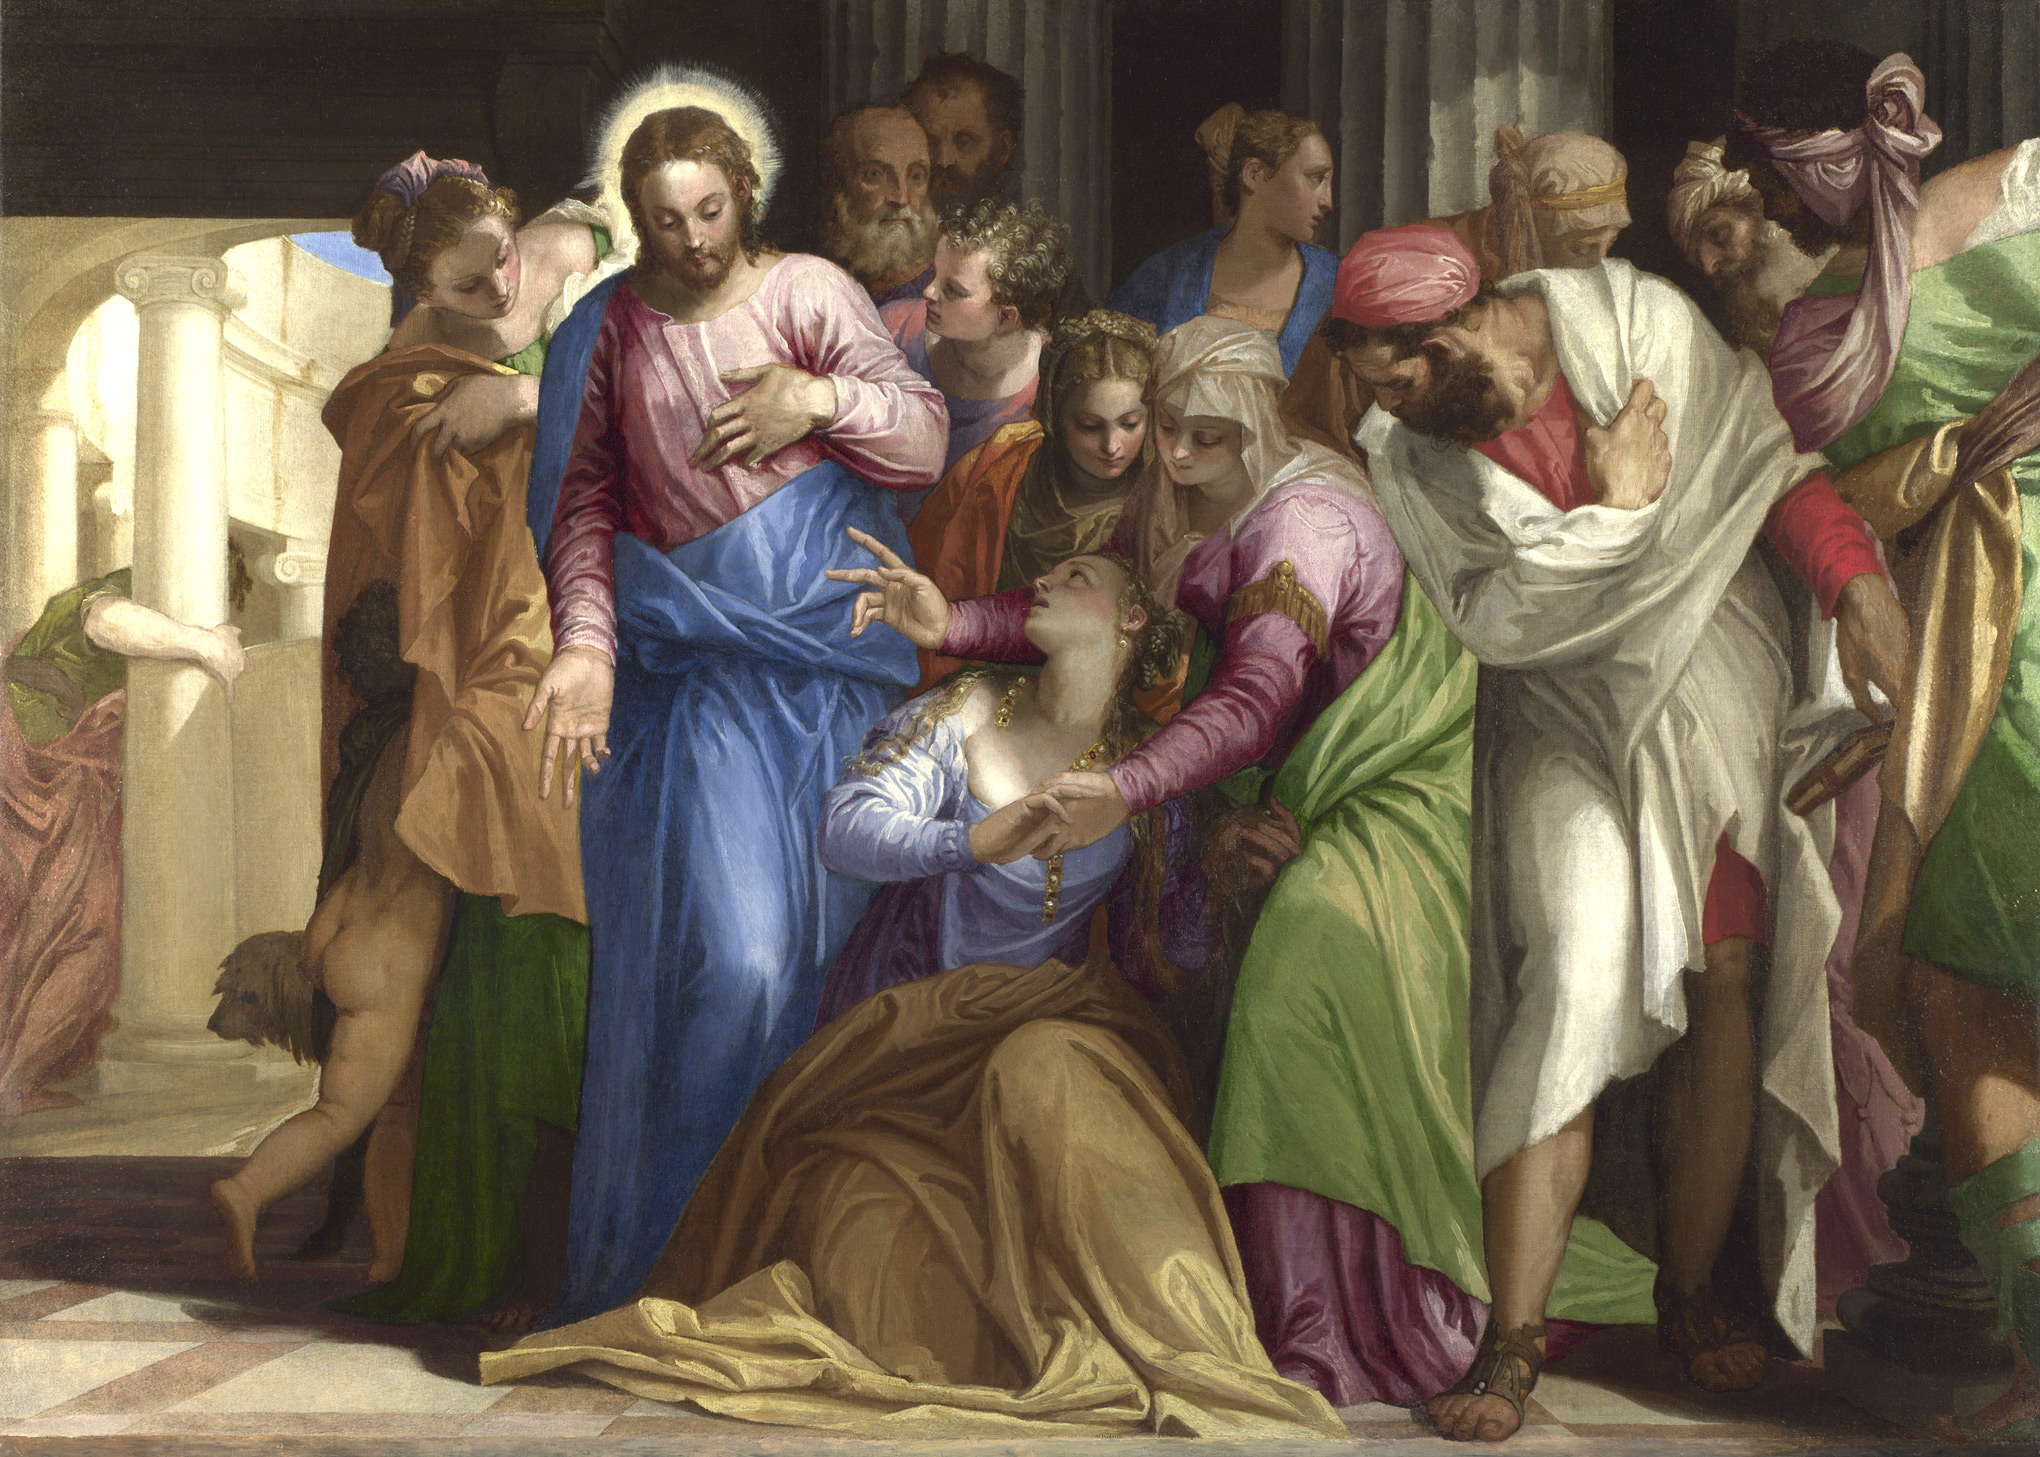 Veronese Christ Healing a Woman with an Issue of Blood